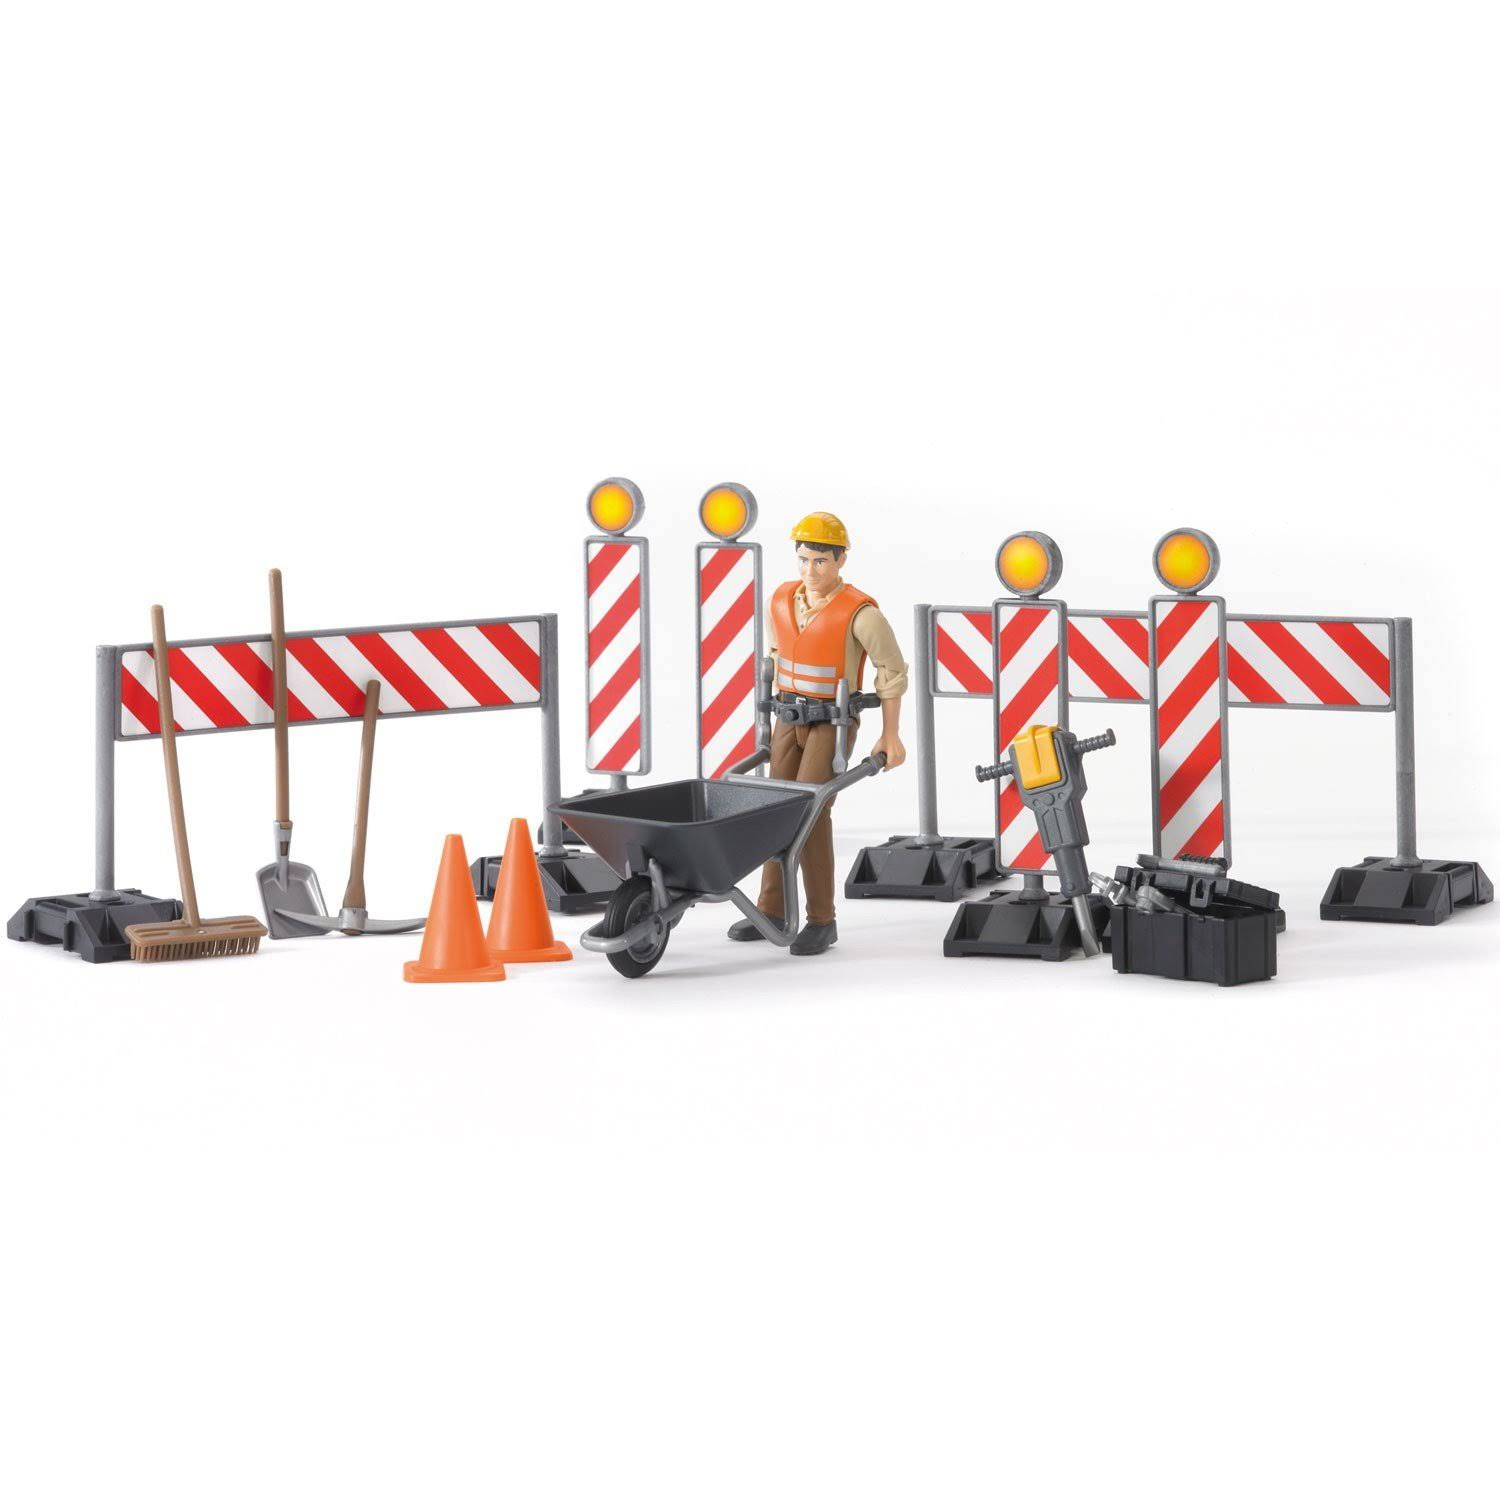 Bruder 62000 Construction Figure Set